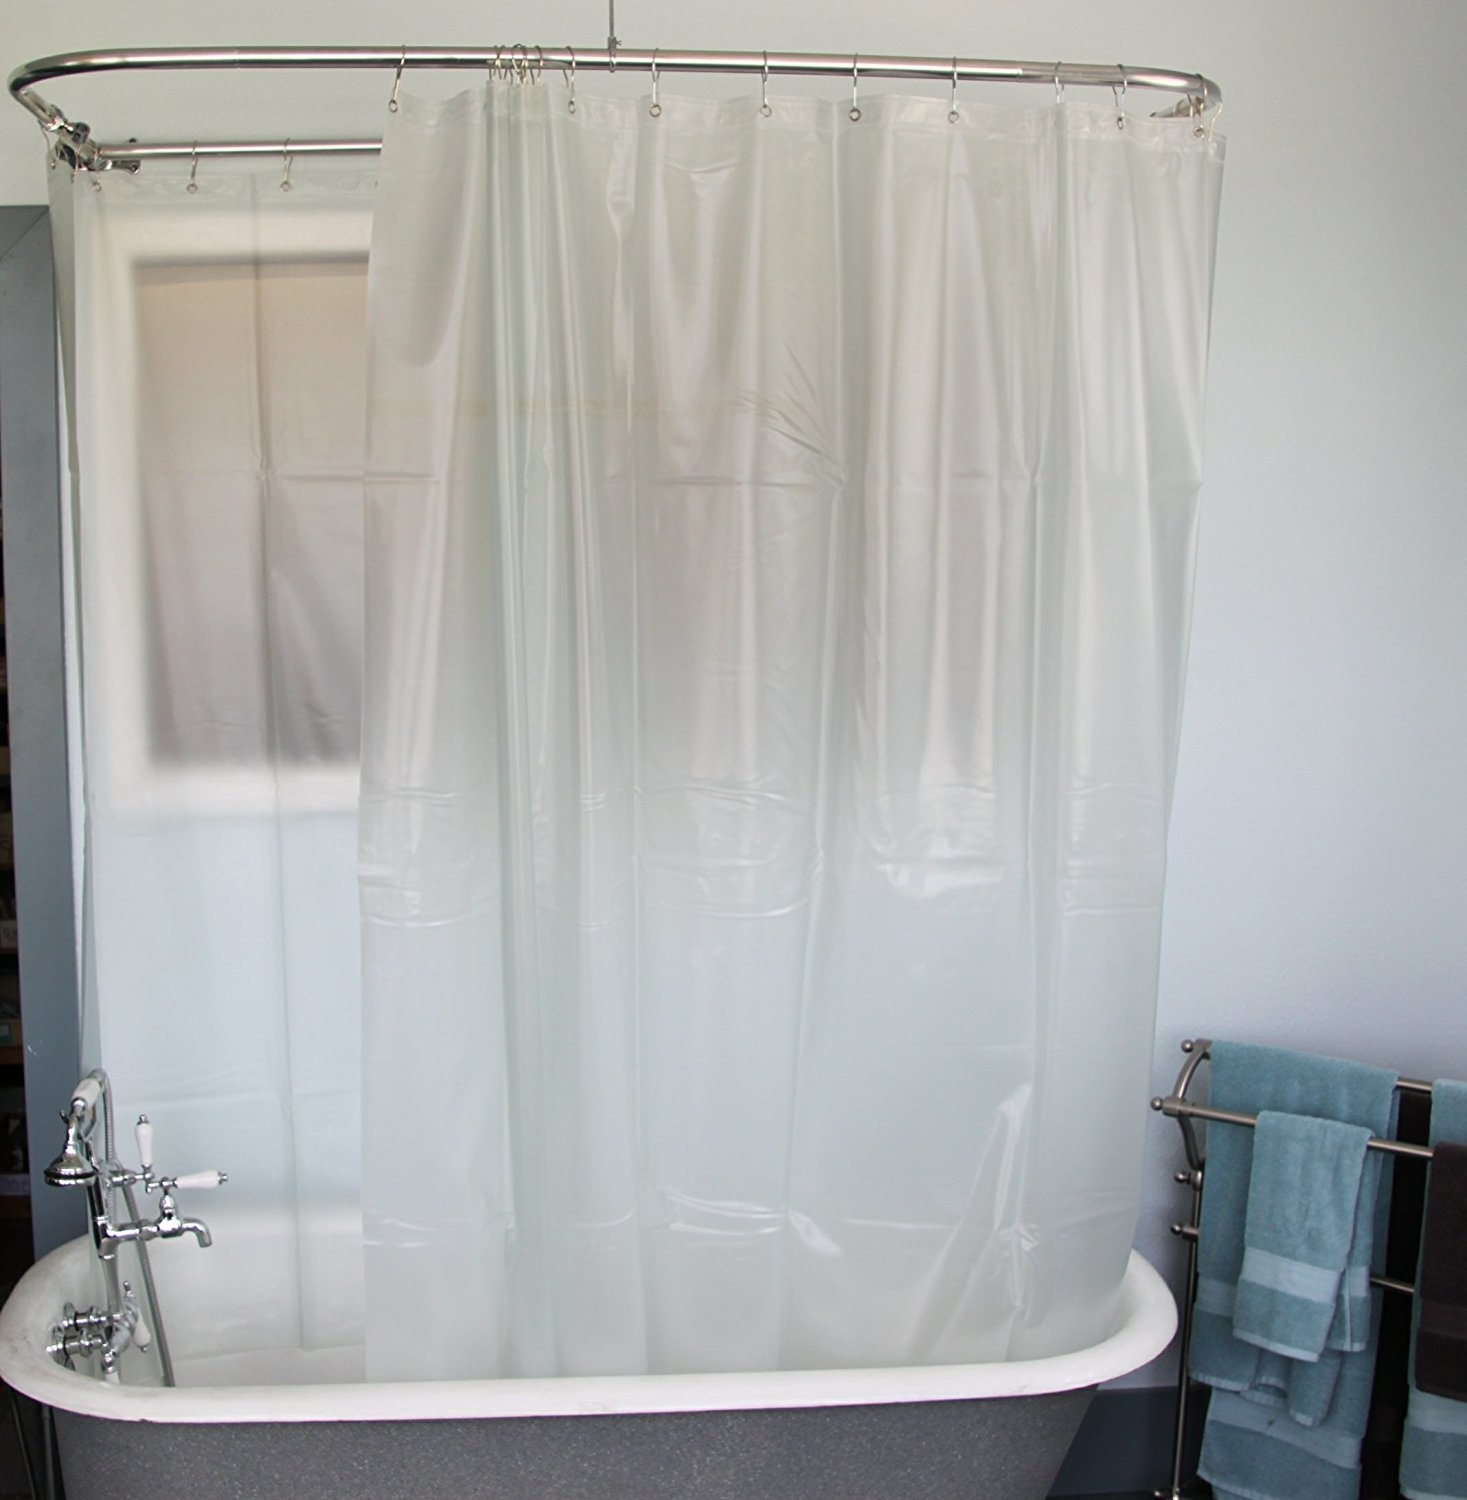 Amazon Extra Wide Vinyl Shower Curtain For A Clawfoot Tub Throughout Claw Tub Shower Curtains (Image 4 of 25)